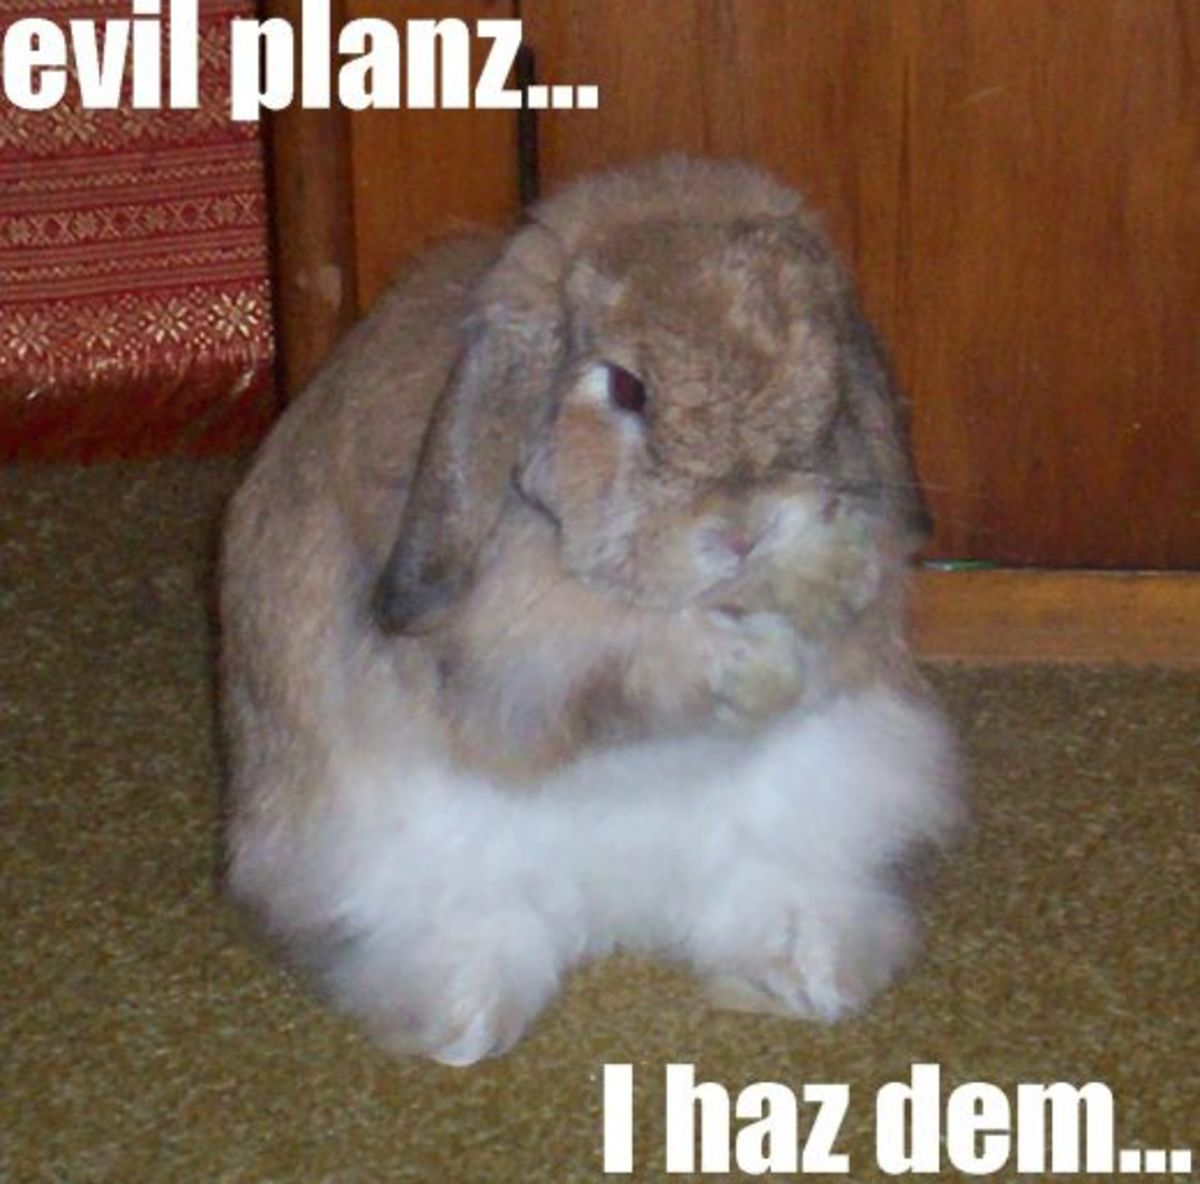 66 6 Good Names For Bad Bunnies | HubPages